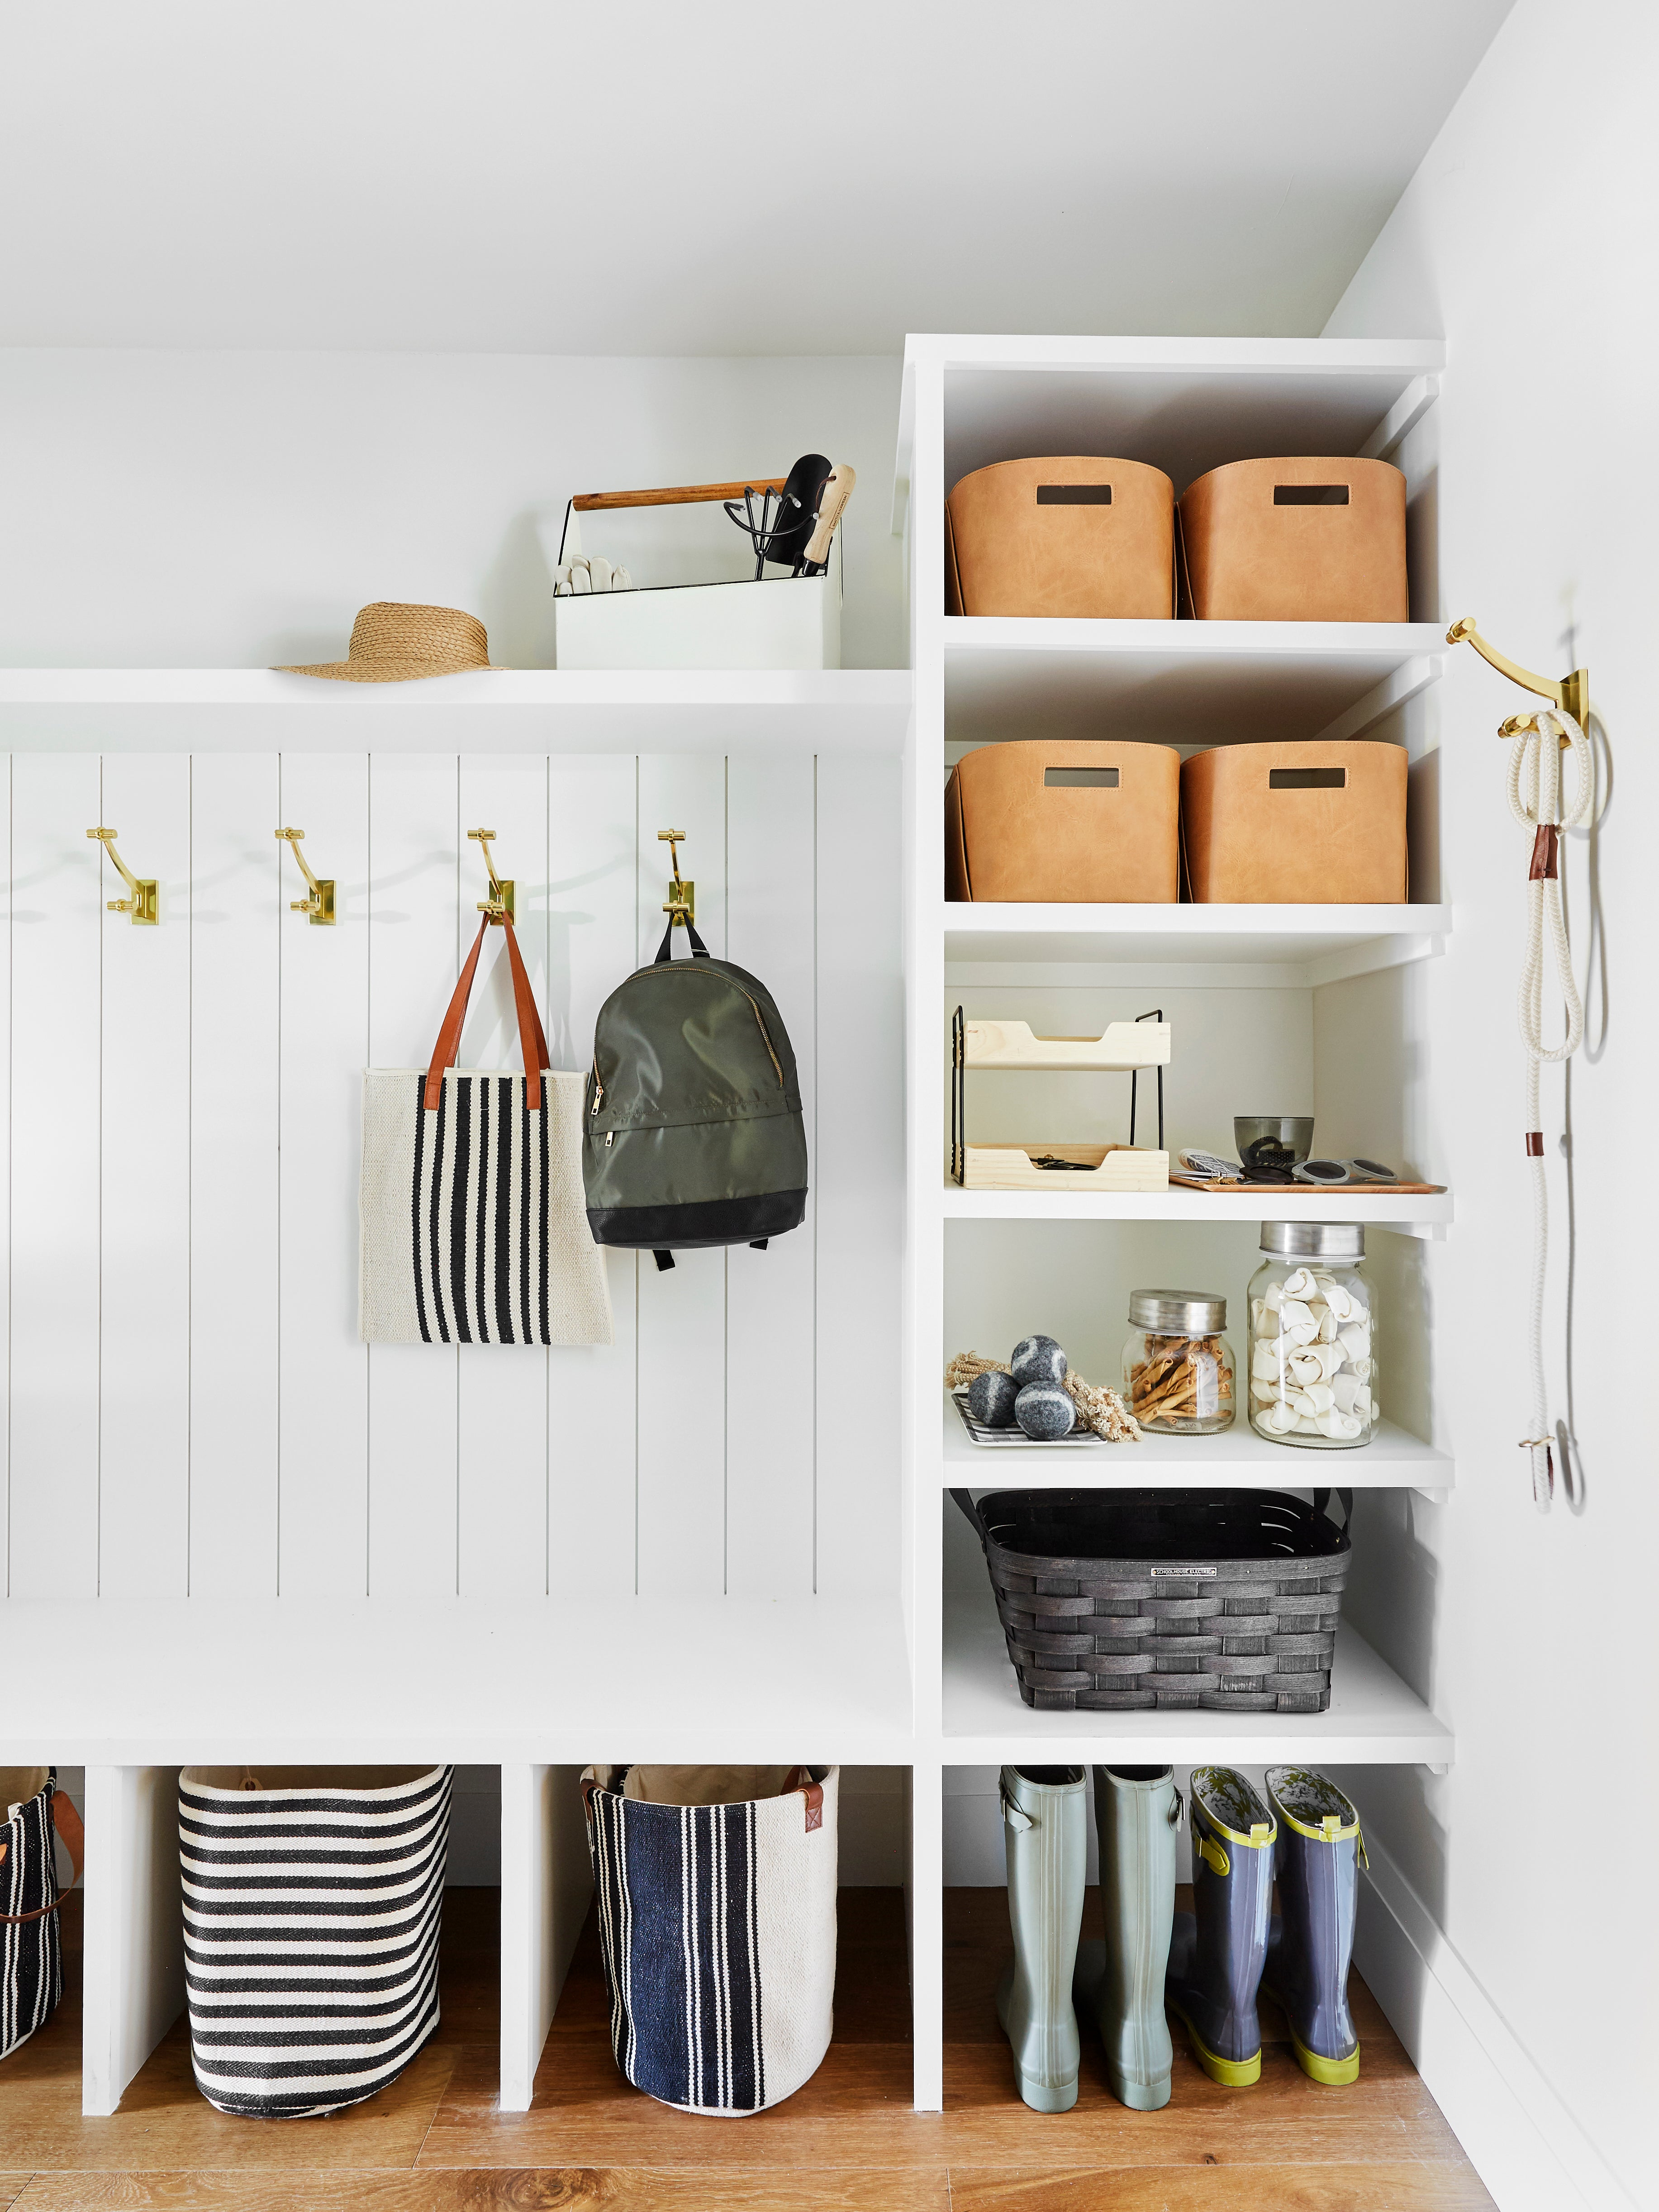 Wait, Only 2% of People Who Try the KonMari Method Last Over 6 Months?